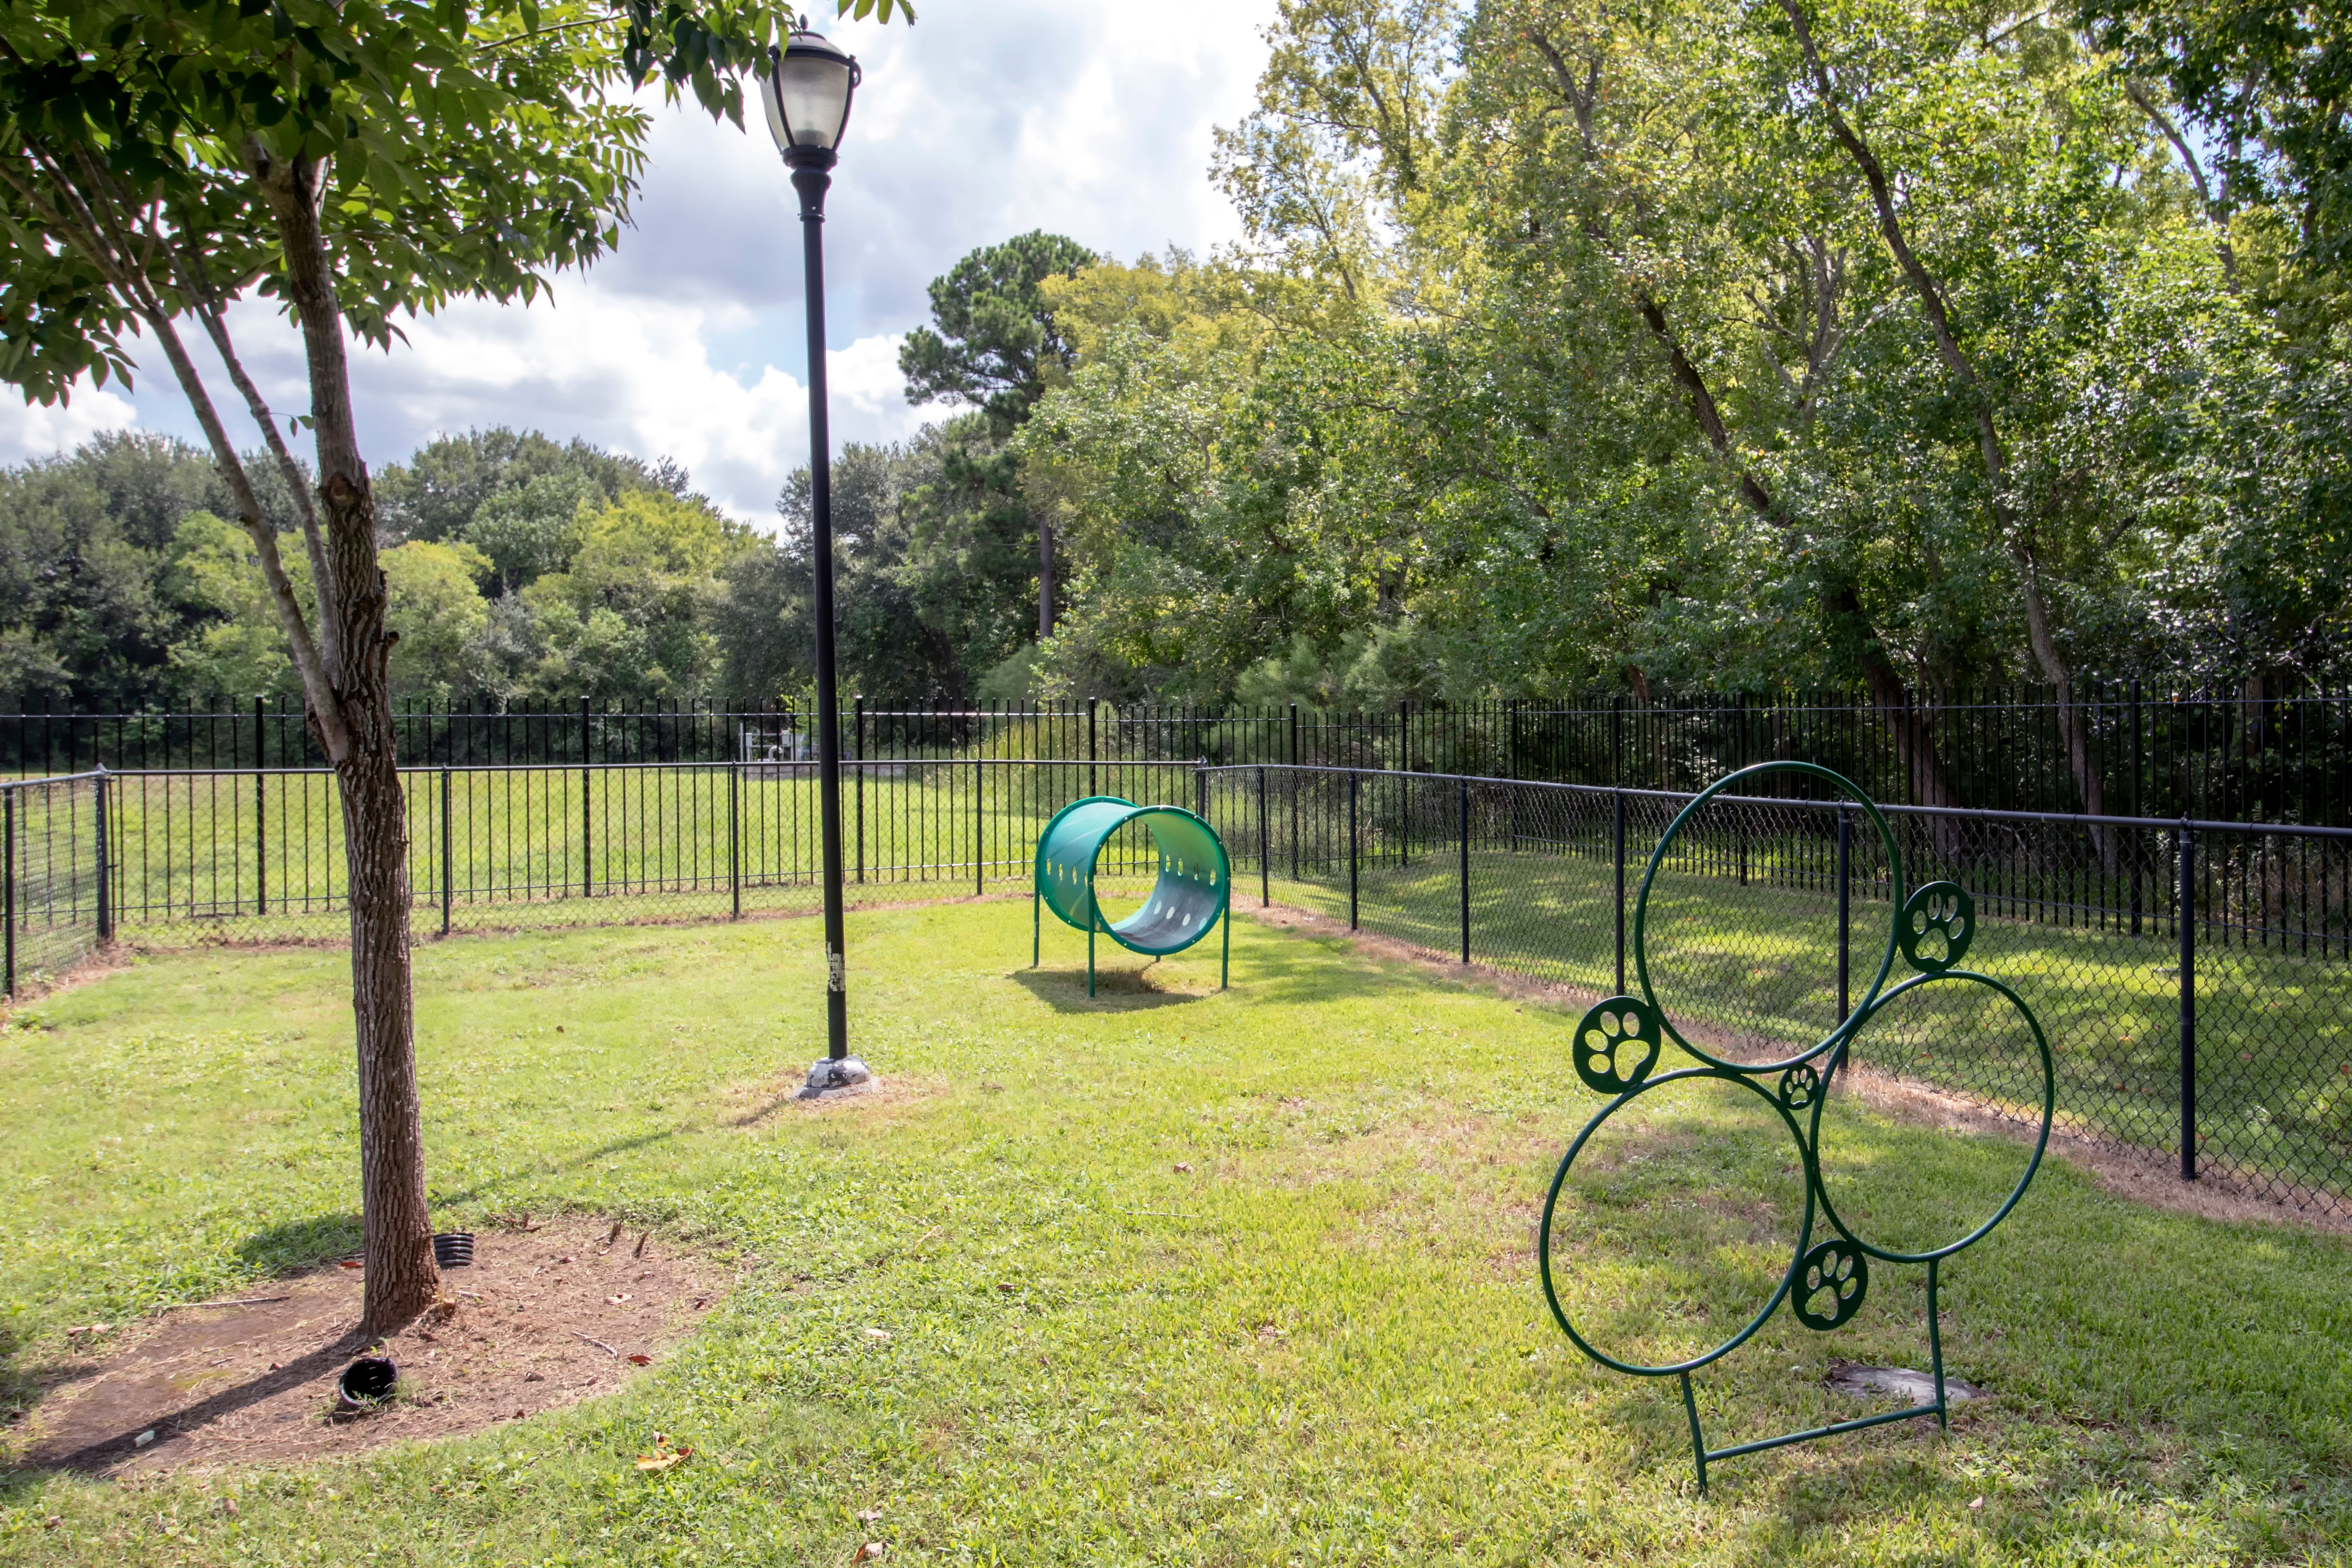 Apartments with a beautiful dog park